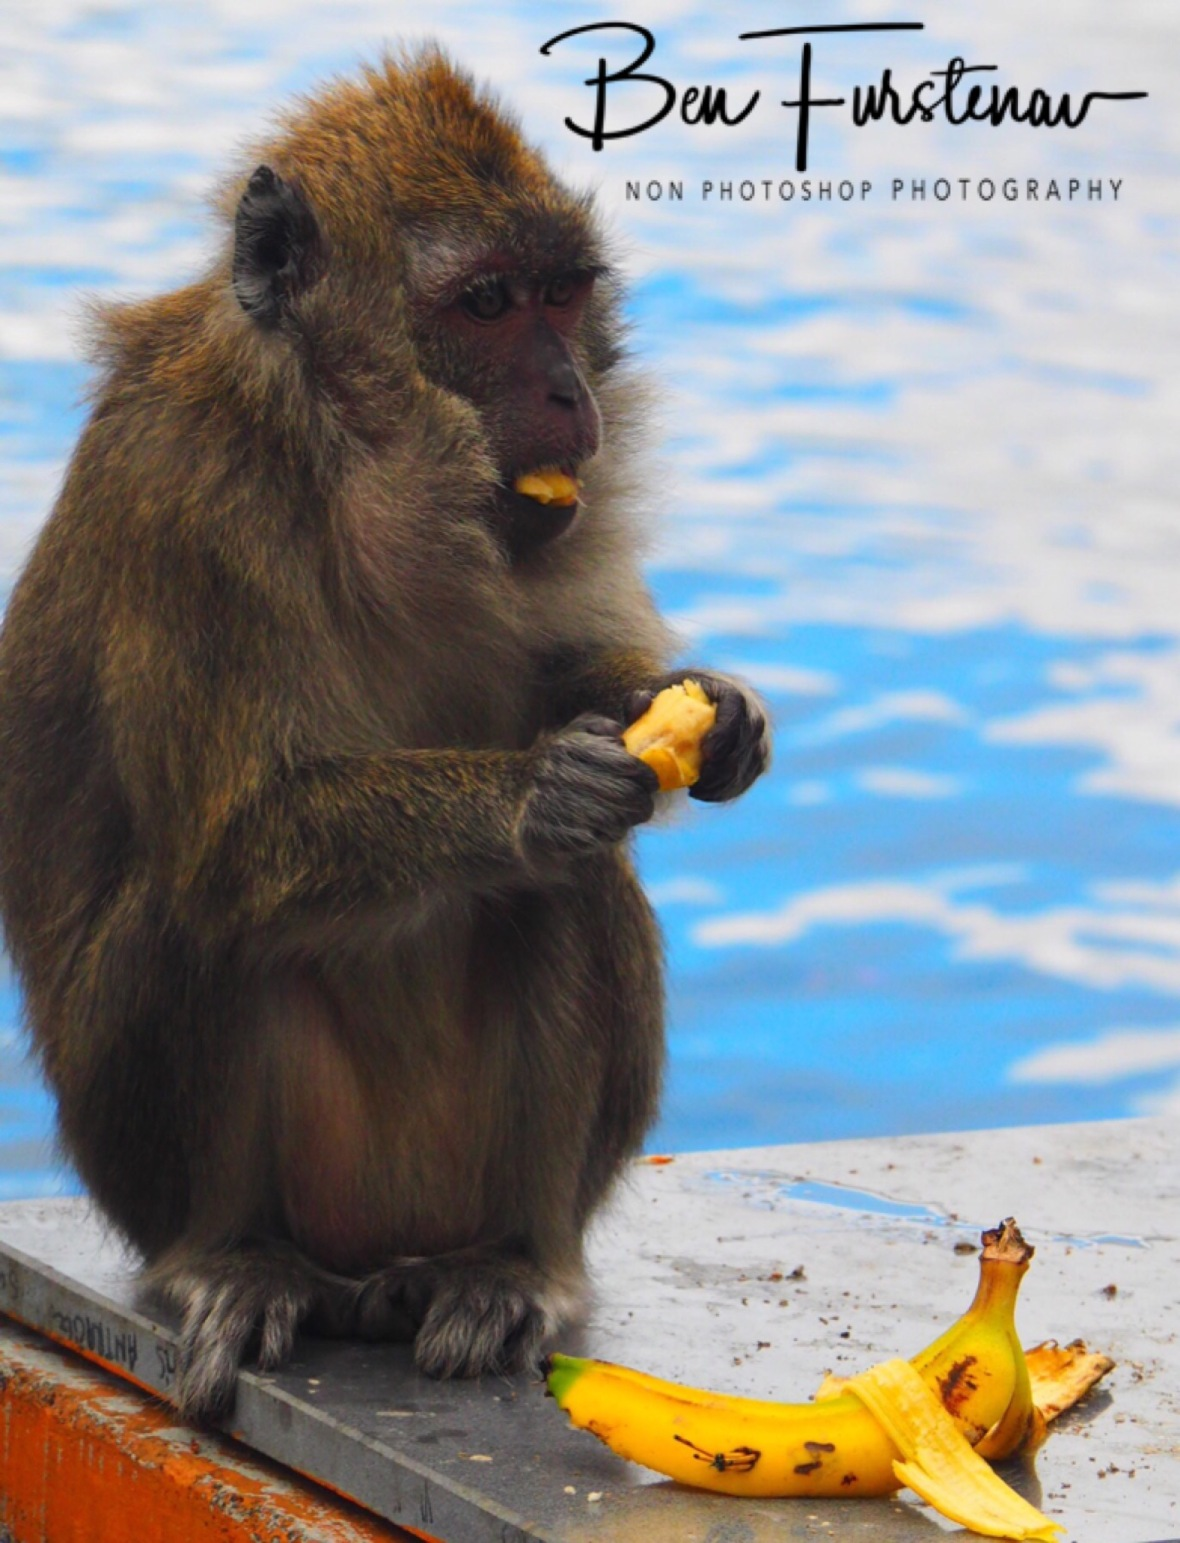 Monkey offerings at Grande Bassin.